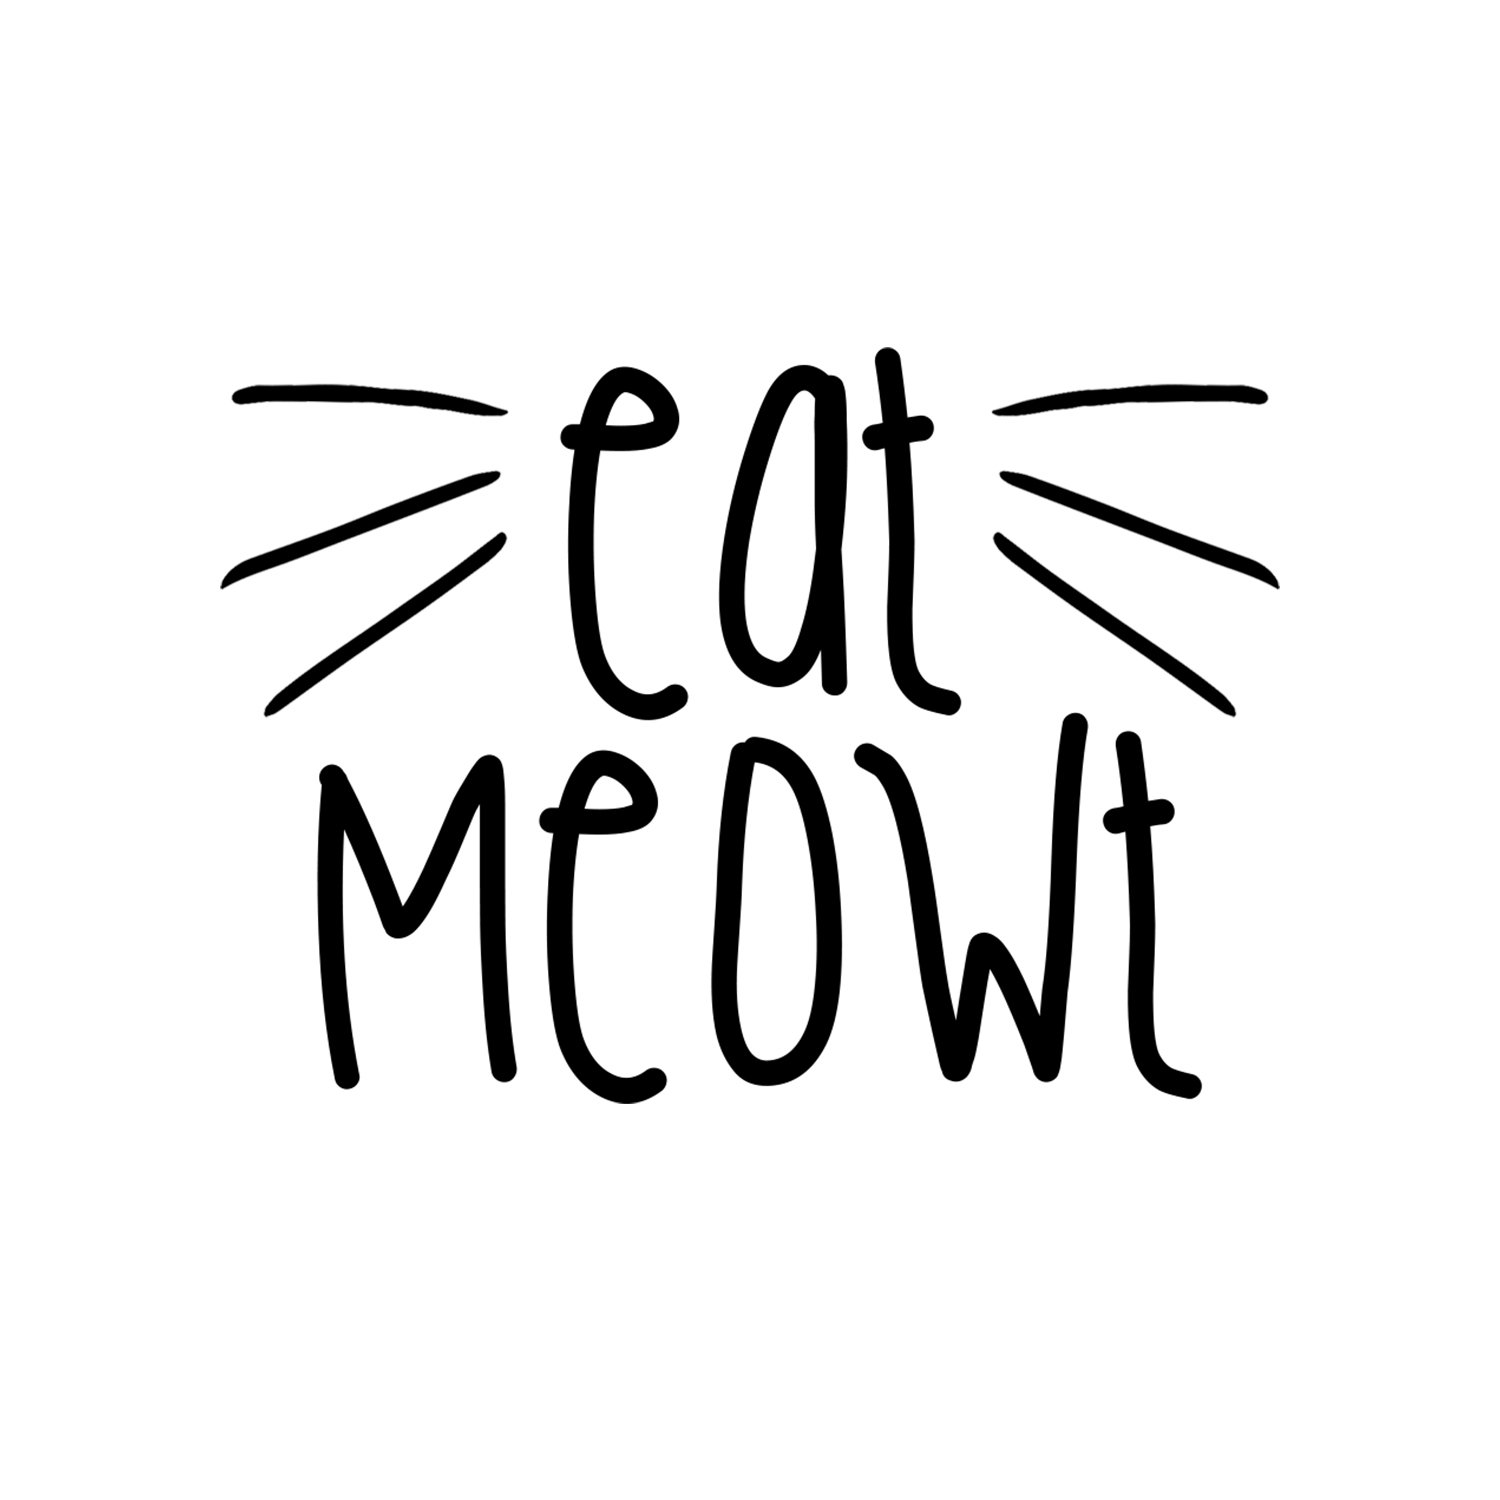 Decal Serpent Eat Meowt Whiskers Funny Womens Cotton Thong Bikini